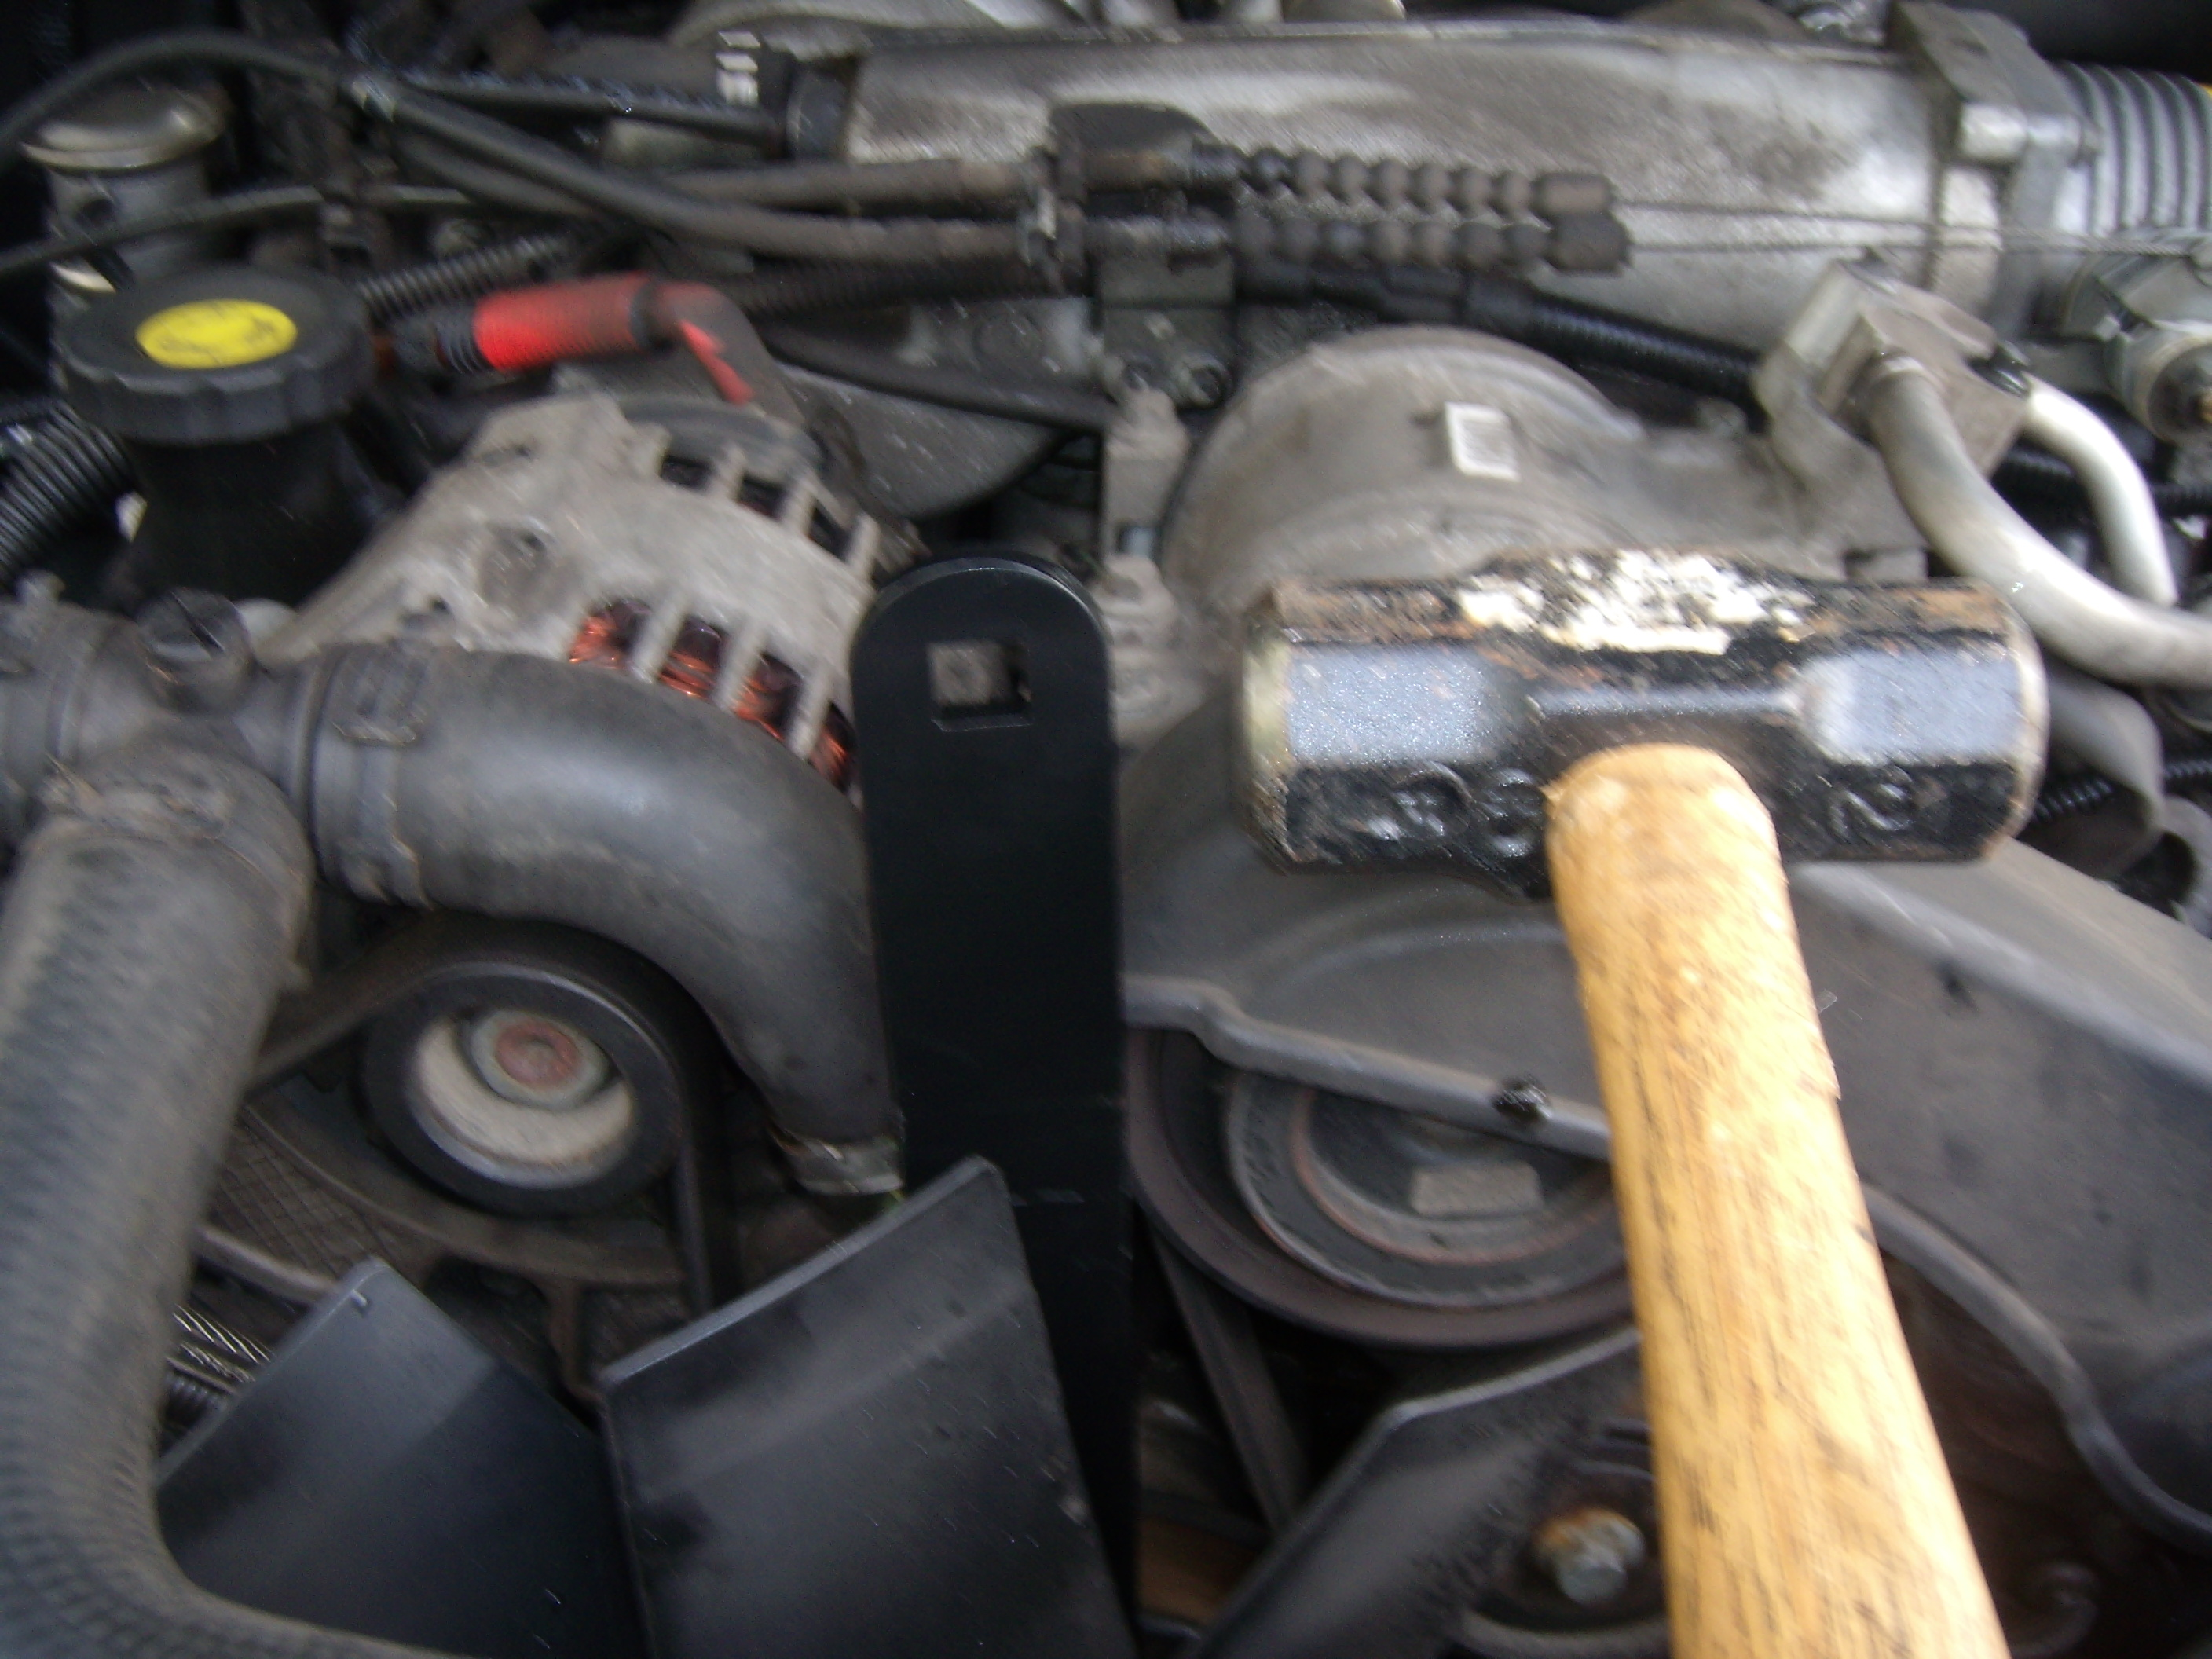 discovery rover radiator conversion tdi land conversions rovers engine series into landrover